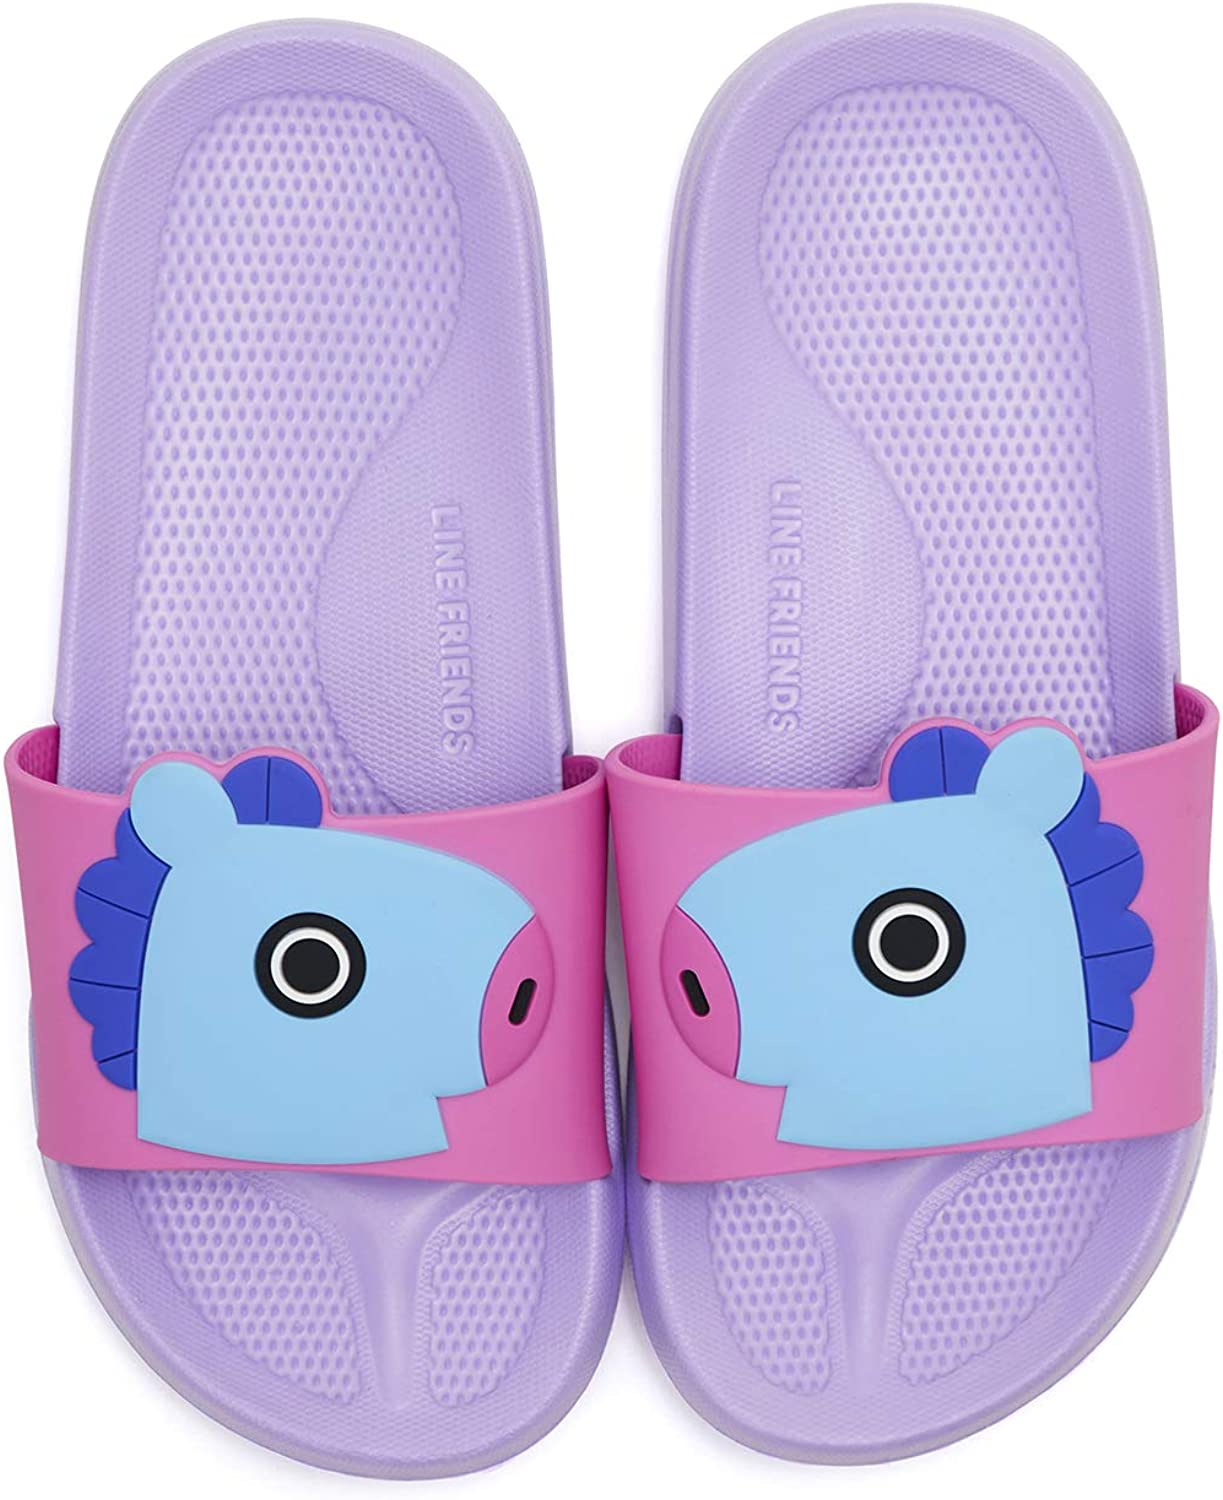 LINE FRIENDS BT21 Official Merchandise MANG Character PVC Indoor House Slippers, Size 8 Purple Pink